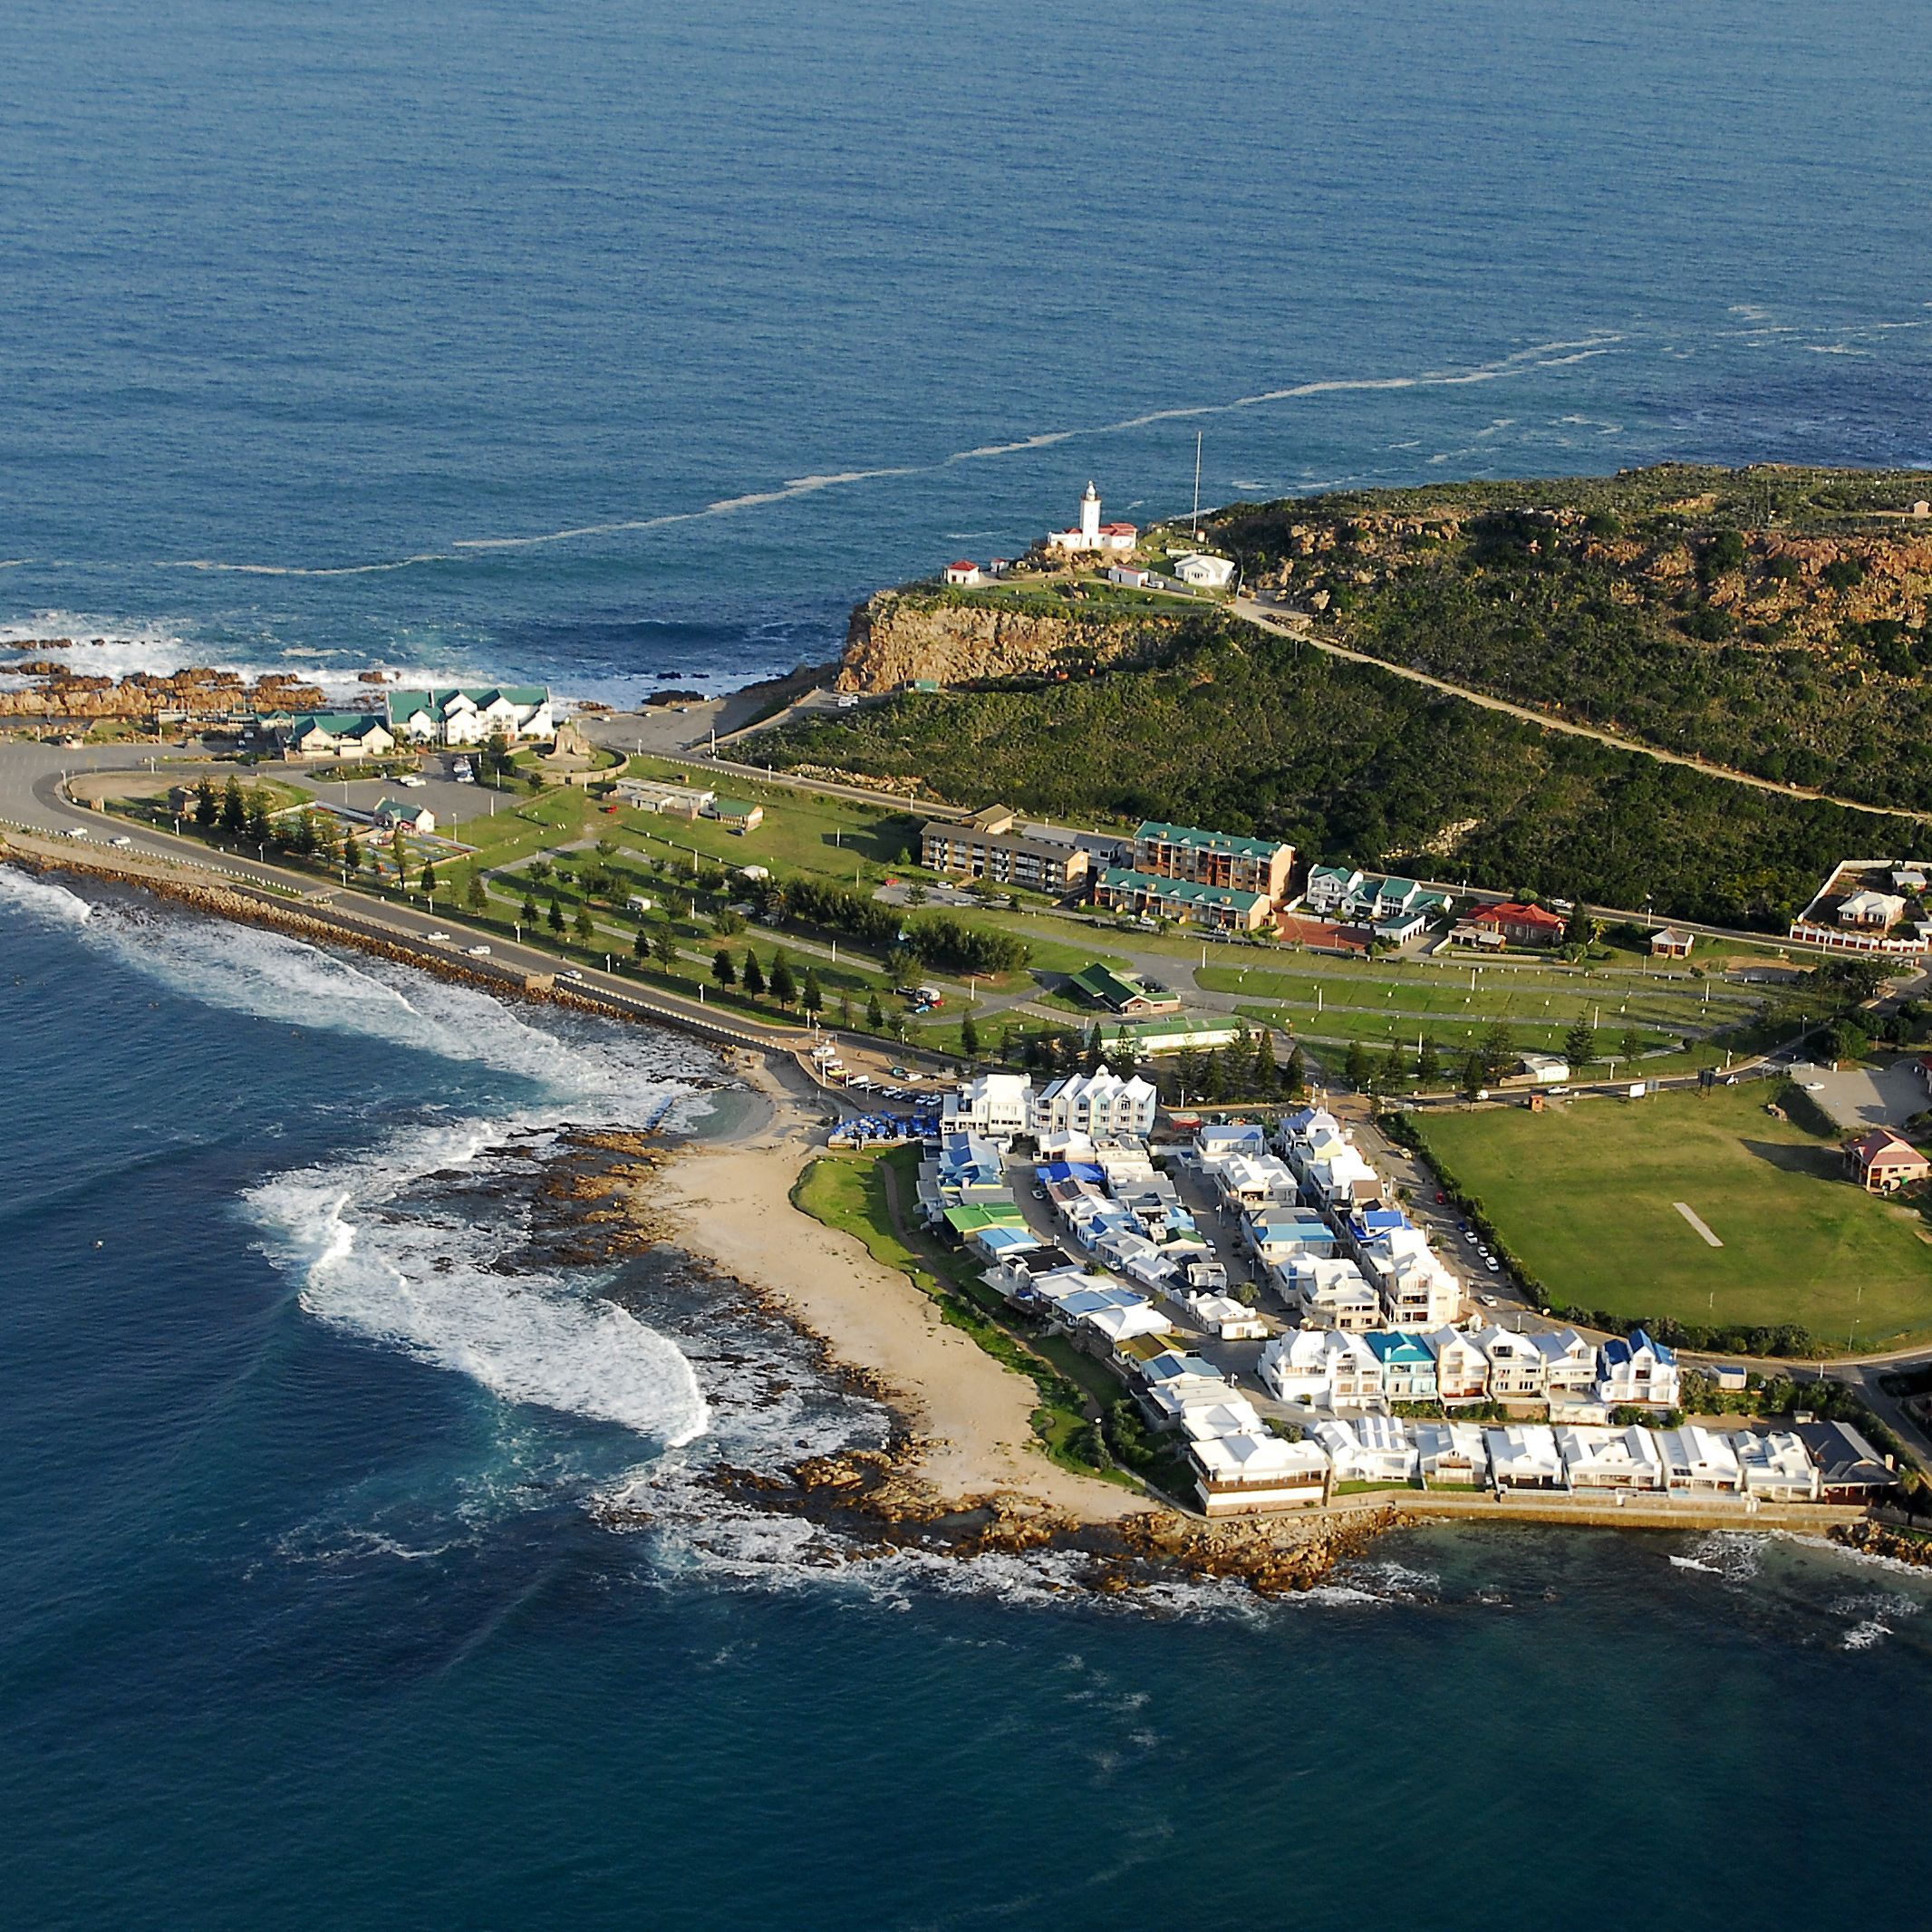 Located 240 miles east of Cape Town, Mossel Bay marks the